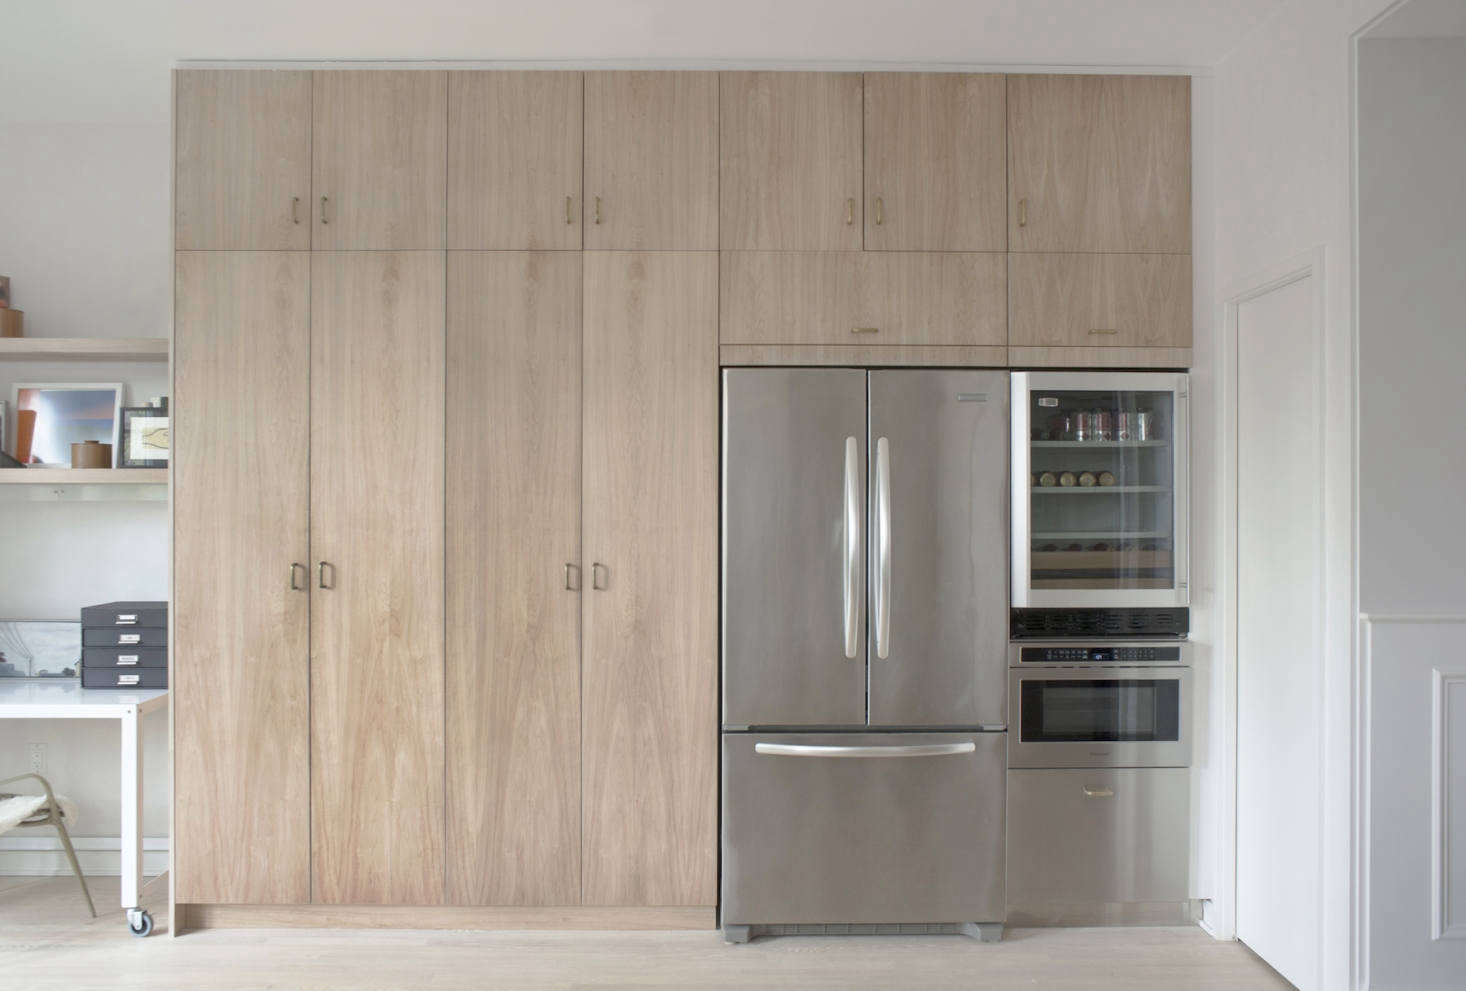 Home Design Ideas Pictures: A Subtly Detailed Kitchen In Stainless And Wood For A DC